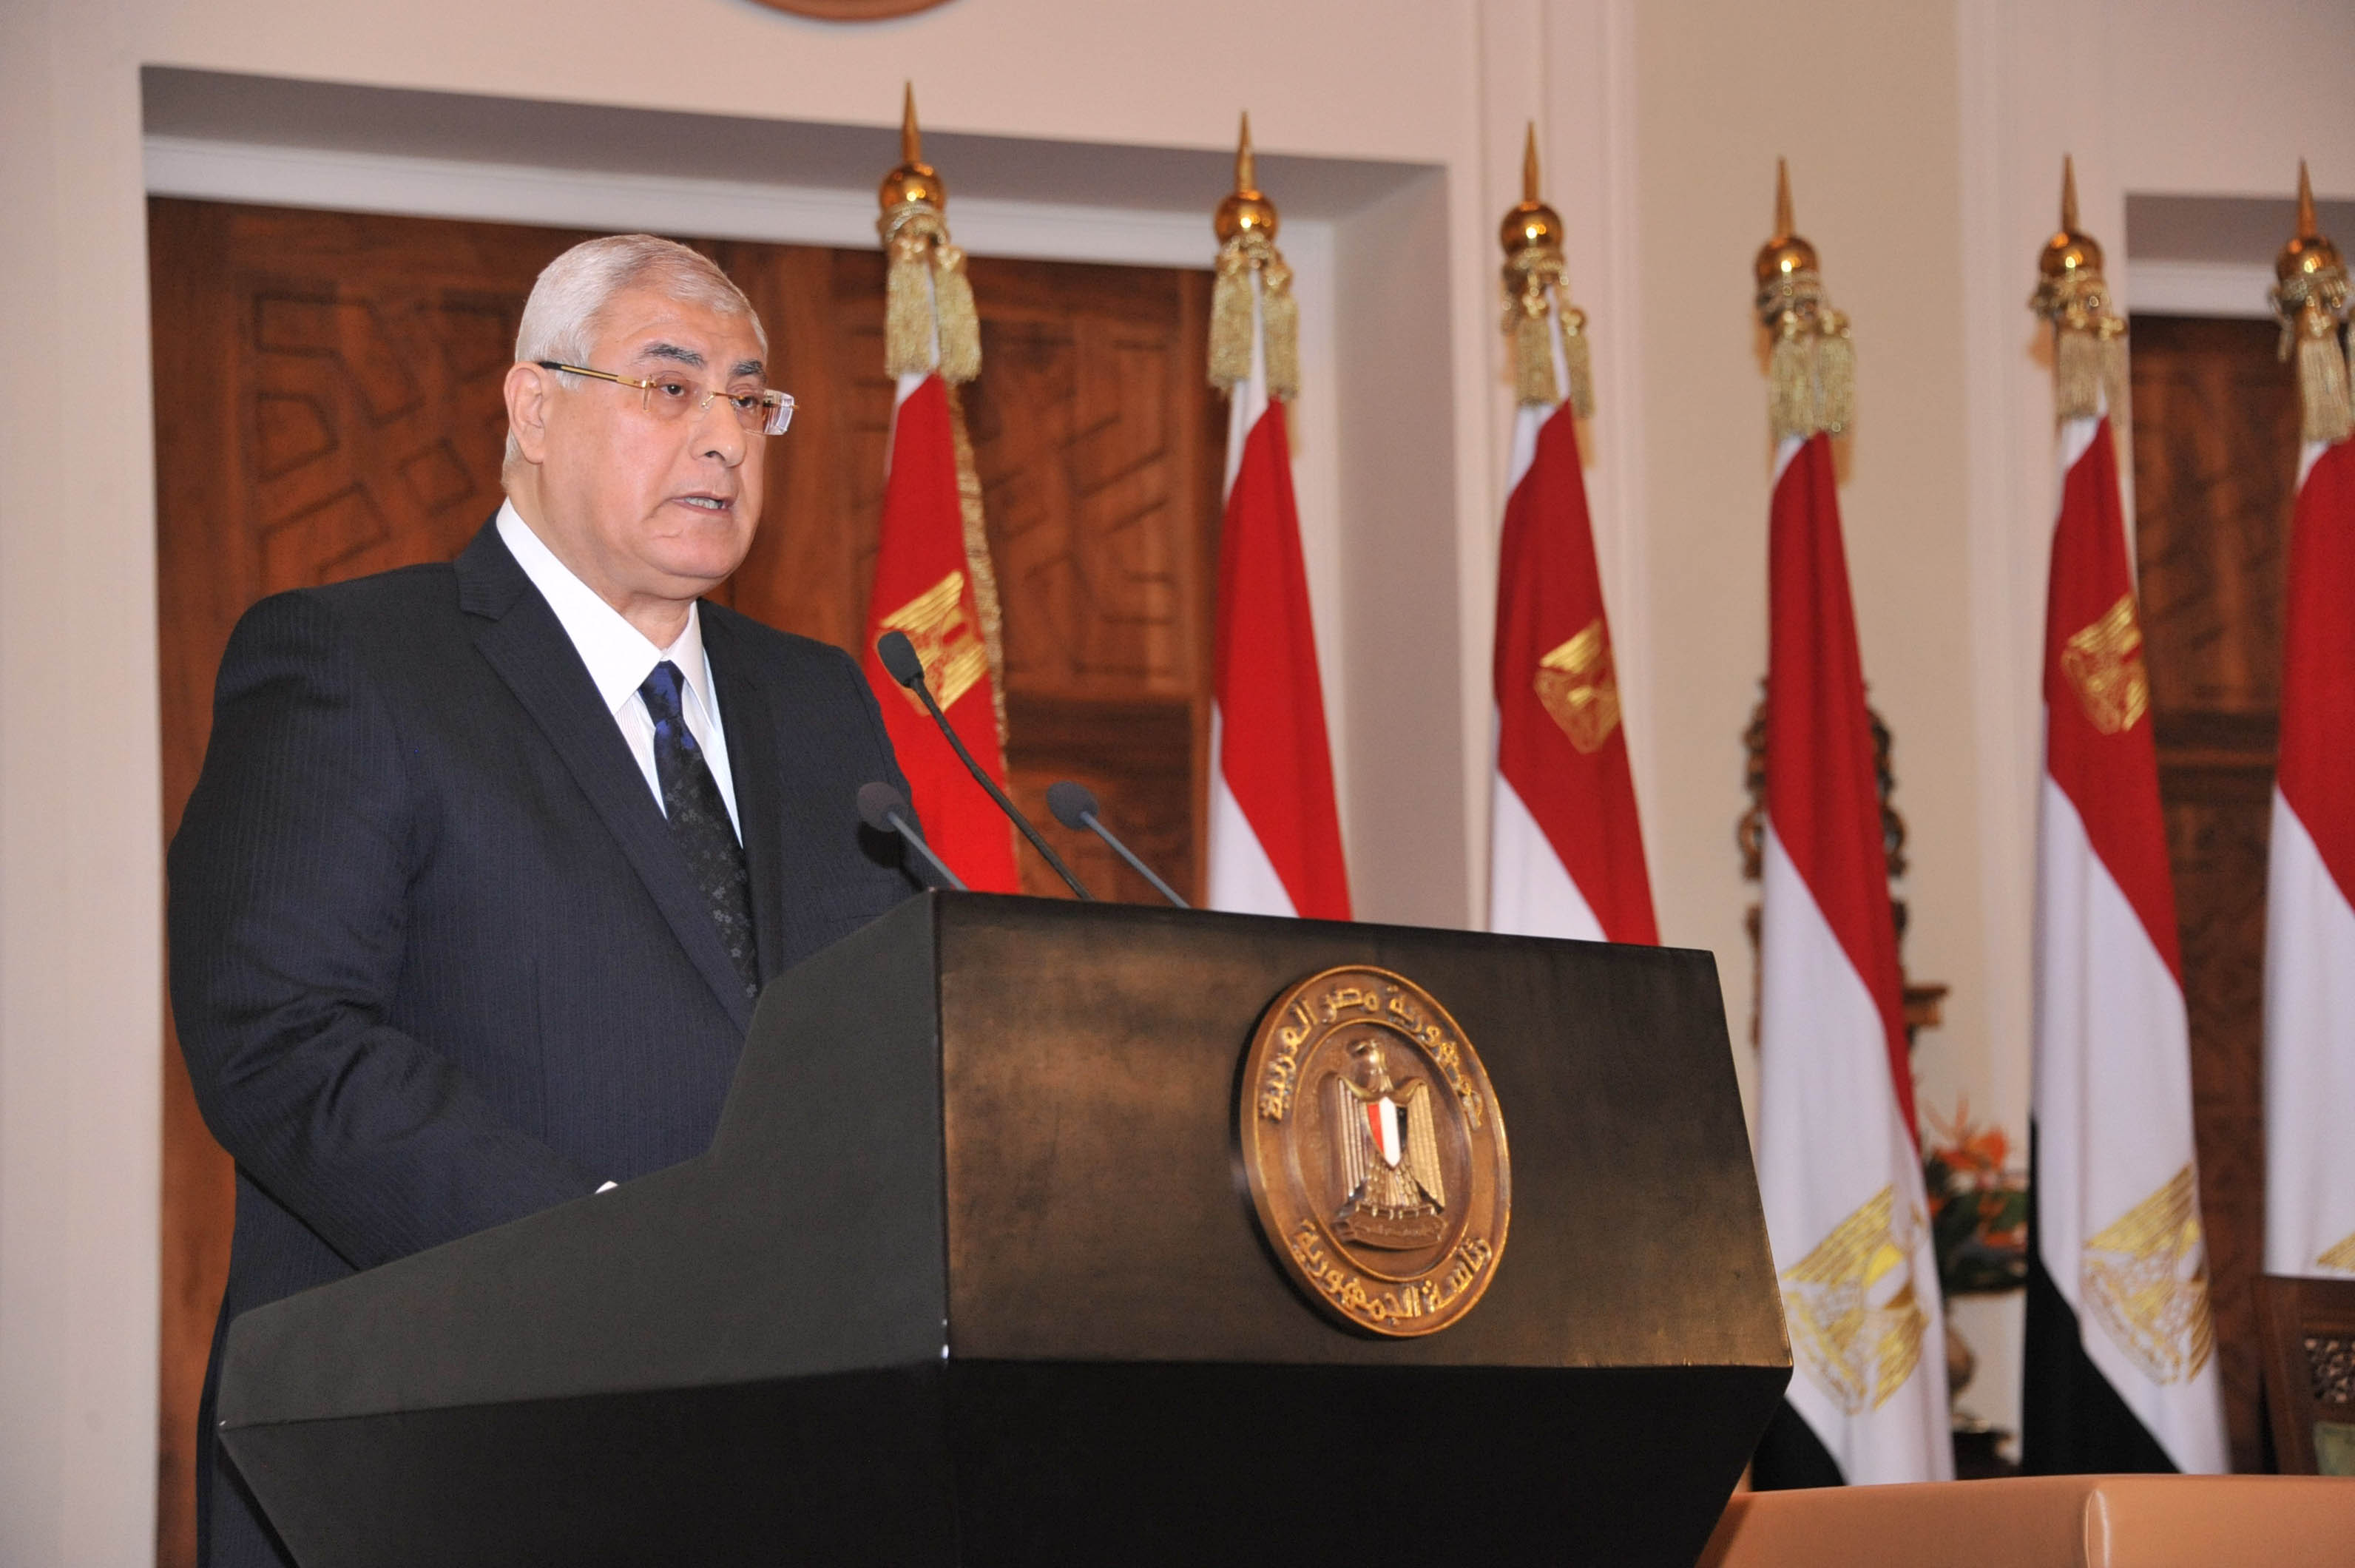 "A handout picture released by Egyptian presidency shows Egypt's interim president Adly Mansour annoucing that a referendum on a new draft constitution will be held next month, during a press conference in Cairo on December 14, 2013. The constitutional referendum is to be followed by parliamentary and presidential elections in mid-2014, according to a transition road map outlined by the new military-installed authorities.  AFP PHOTO / HO / EGYPTIAN PRESIDENCY === RESTRICTED TO EDITORIAL USE - MANDATORY CREDIT ""AFP PHOTO/HO/EGYPTIAN PRESIDENCY"" - NO MARKETING NO ADVERTISING CAMPAIGNS - DISTRIBUTED AS A SERVICE TO CLIENTS ==="